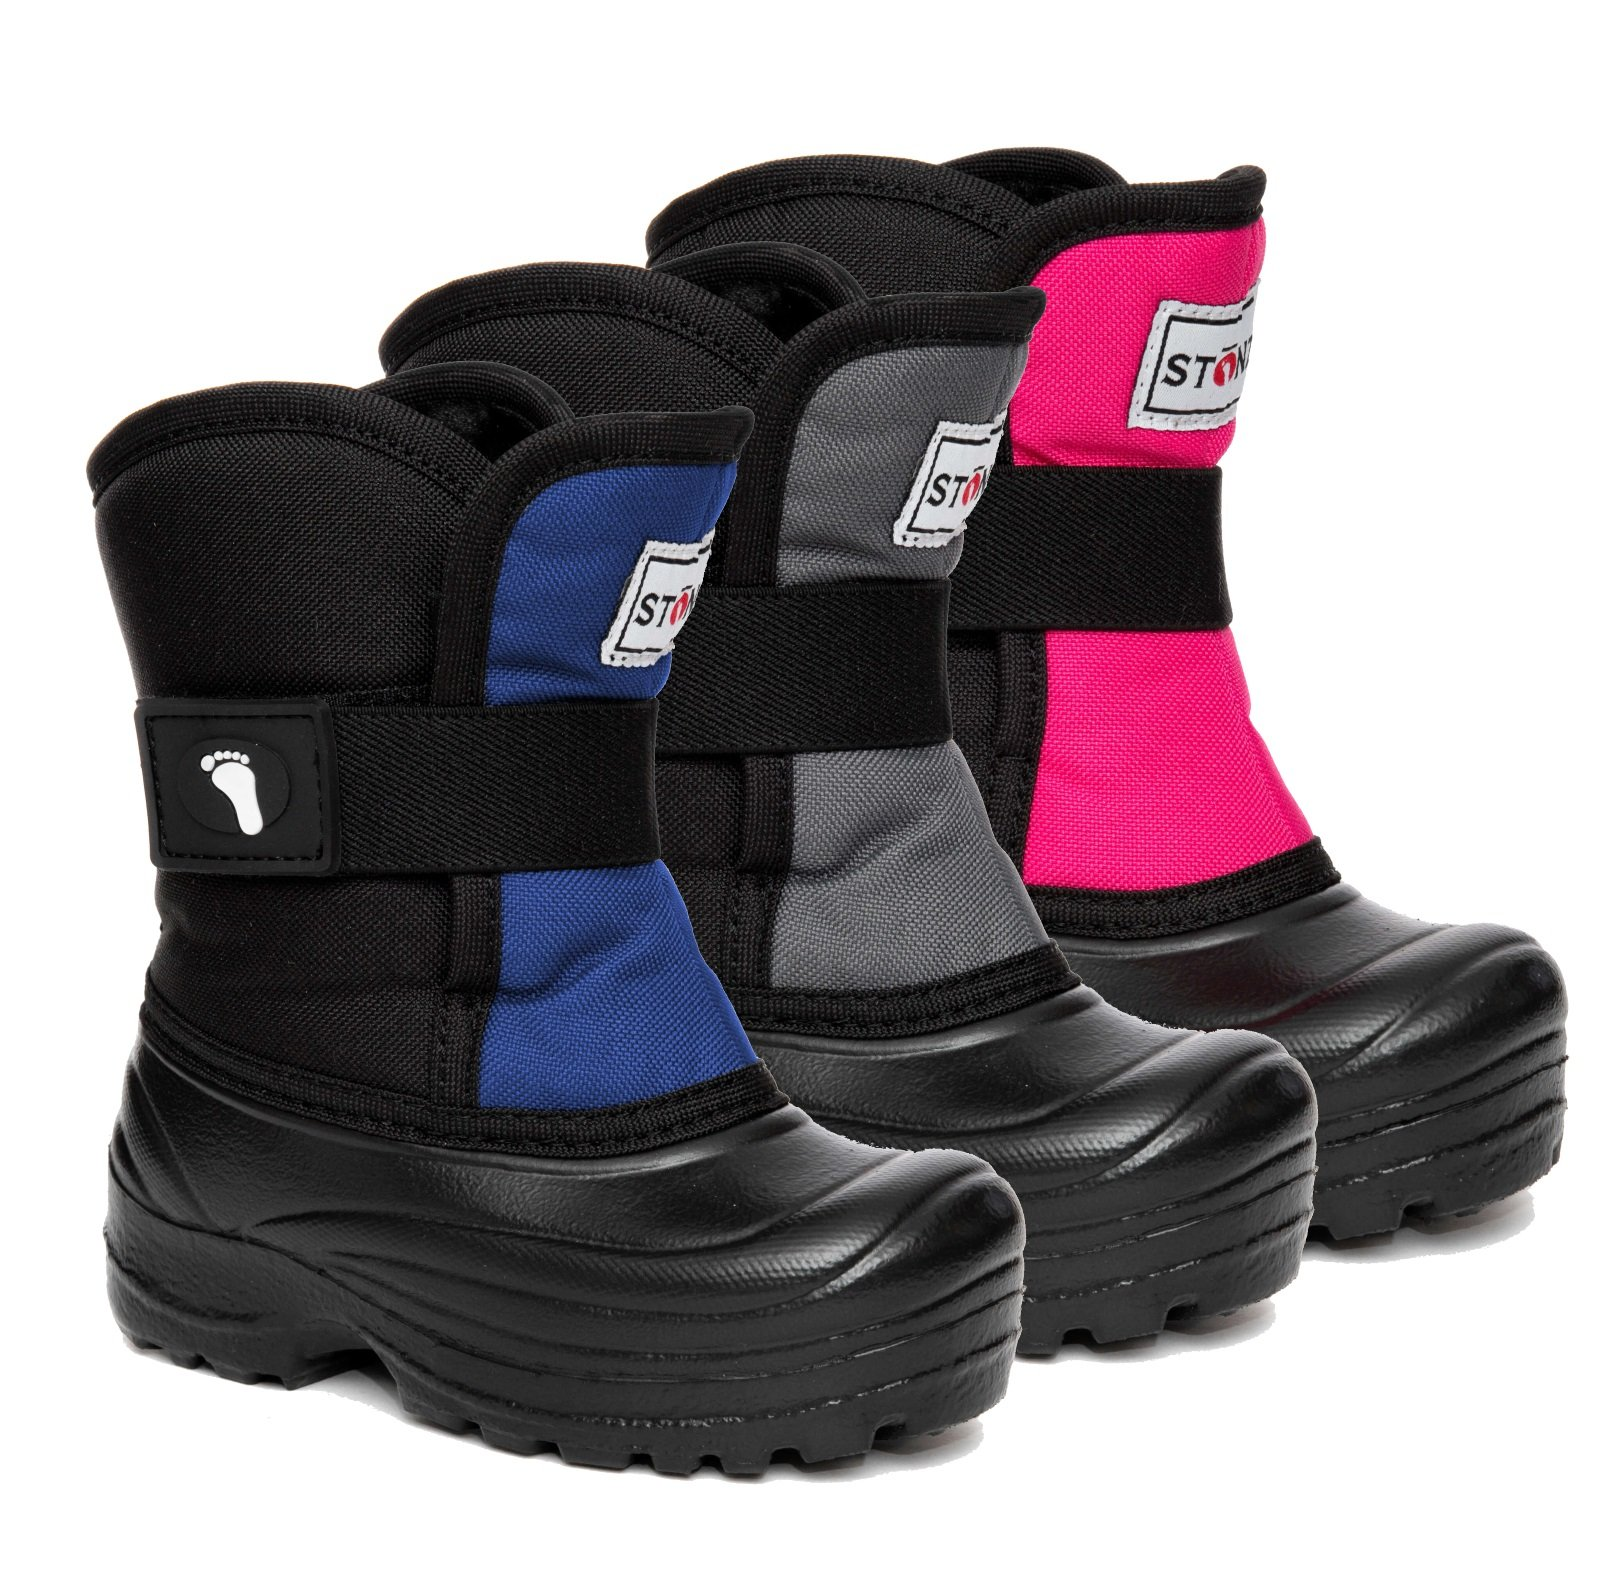 Stonz Scout Winter Boots for Cold Weather, Snow, Ice and Winter Sports - Insulated, Super Light & Warm - Pink/Black, 7T by Stonz (Image #2)